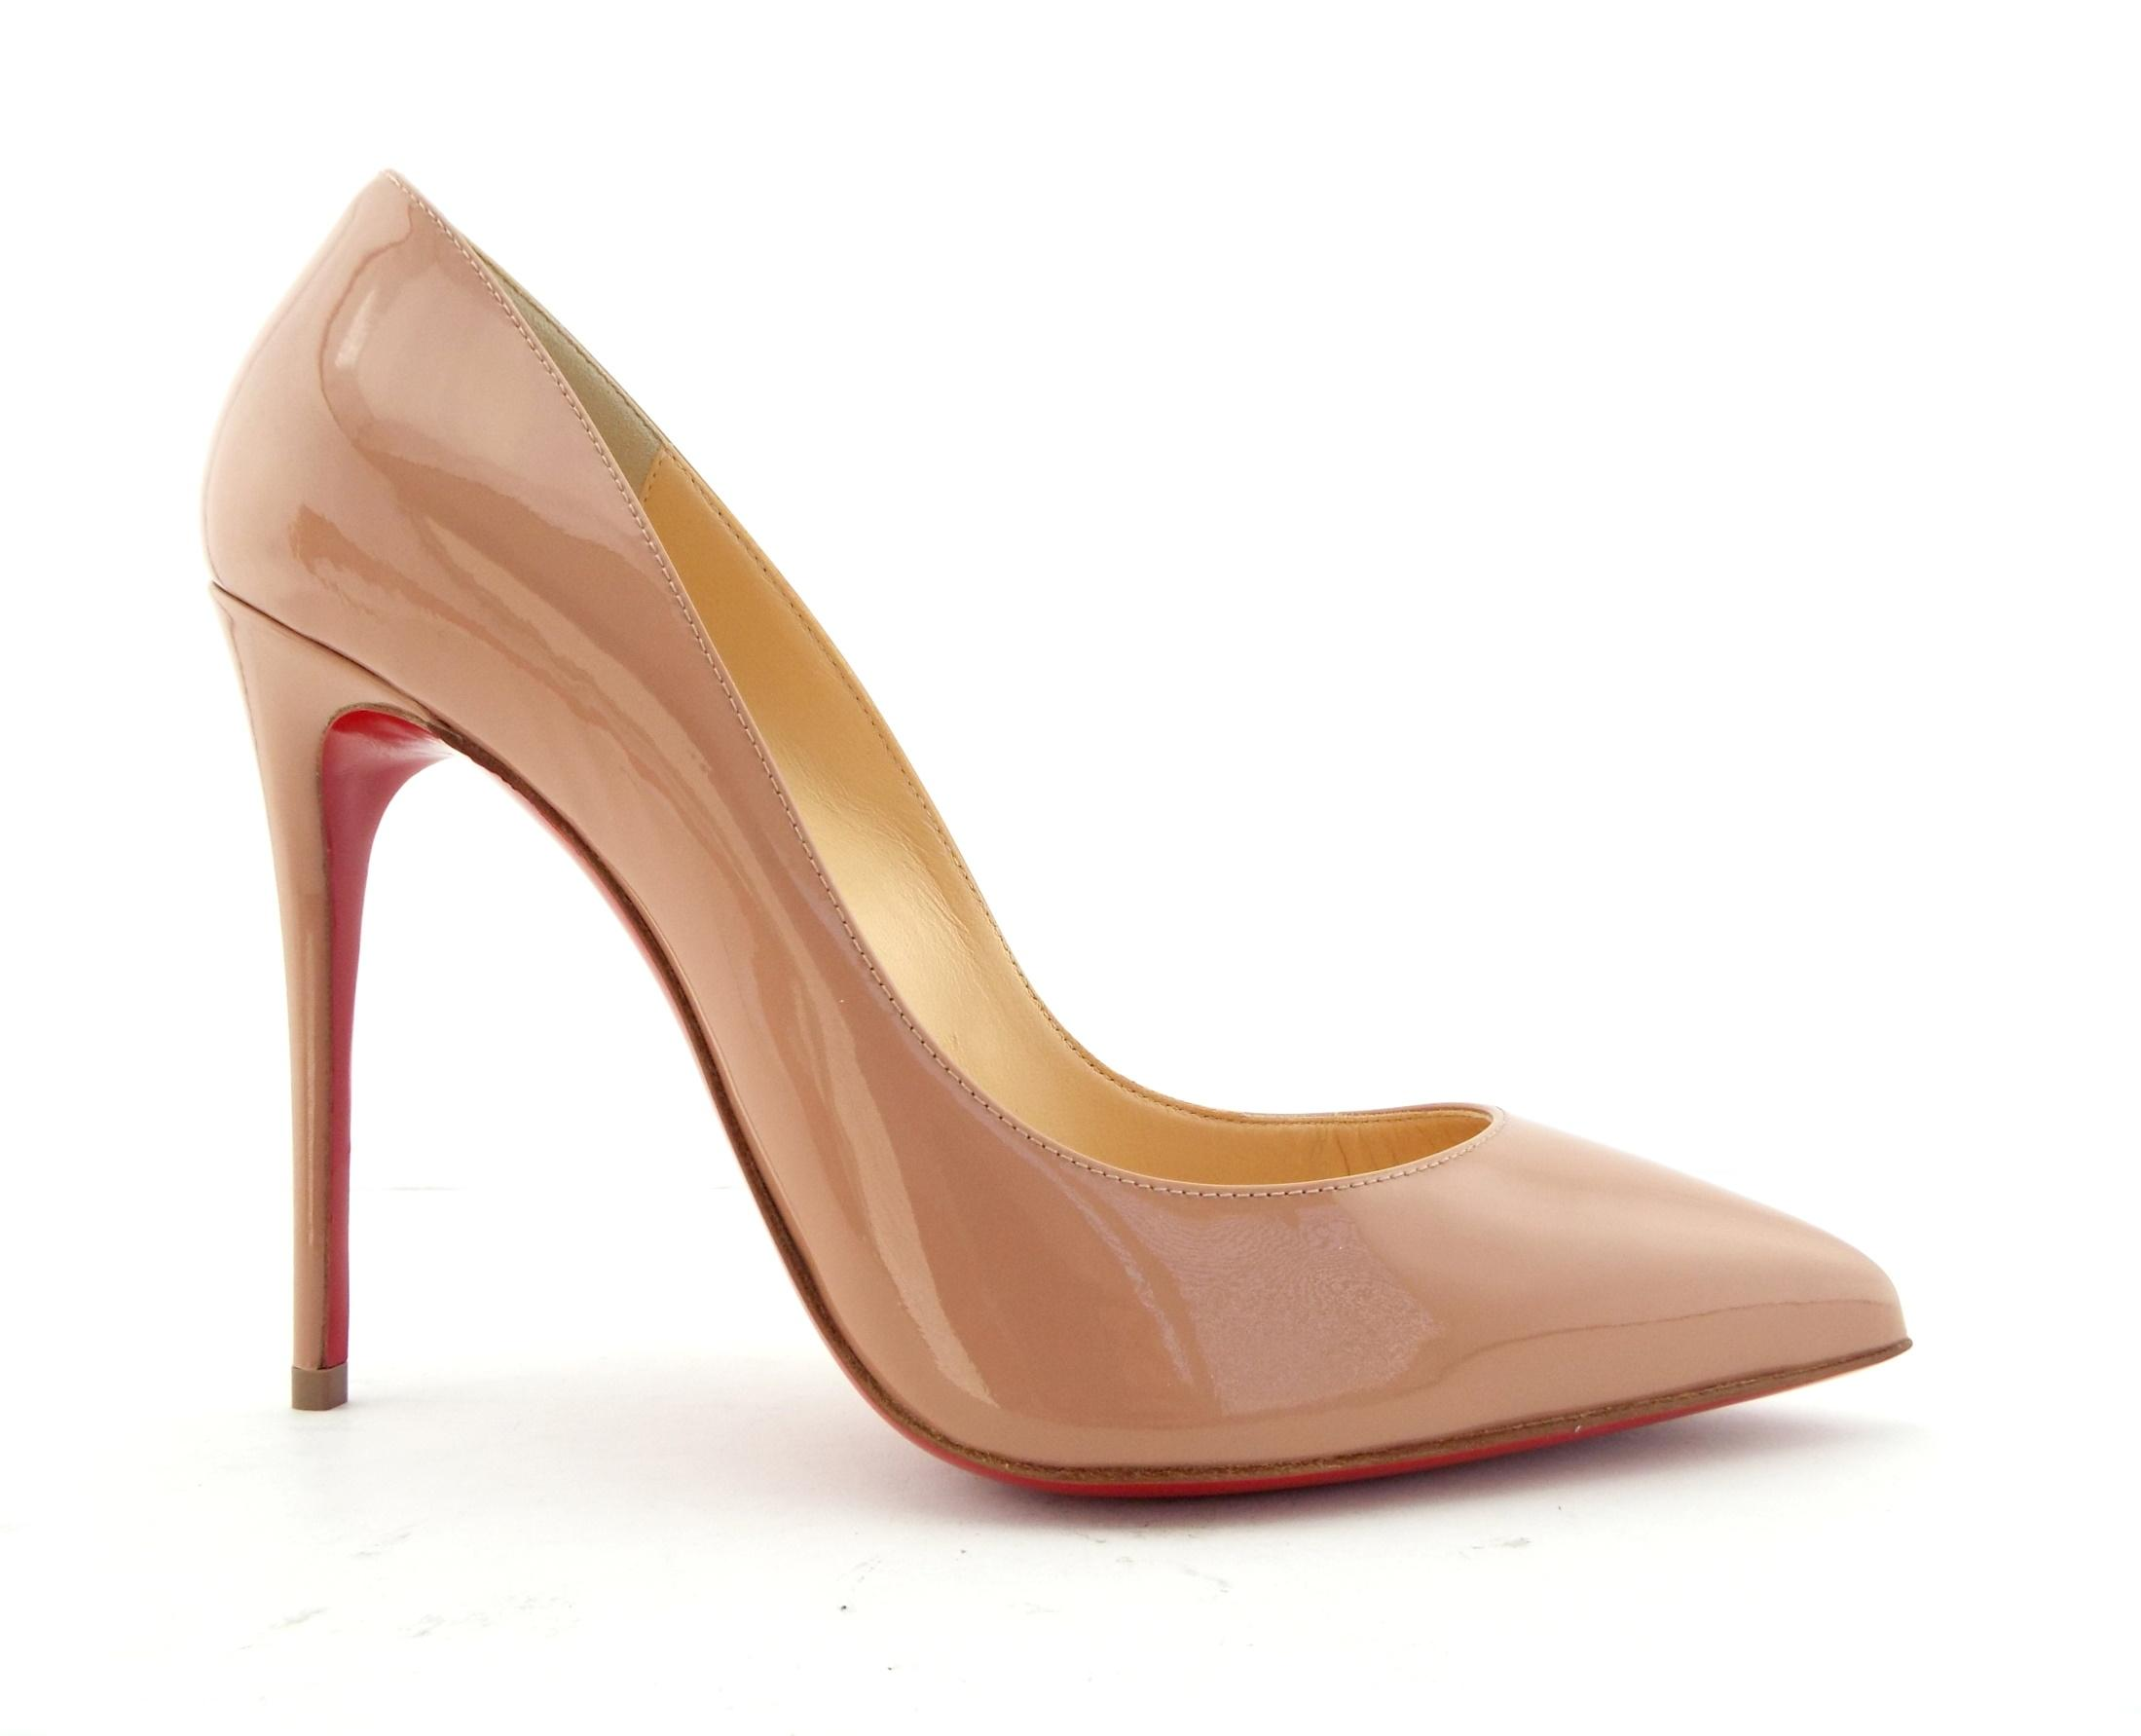 18cc024a3dca Christian Louboutin Red Patent Patent Patent Leather Classic Heel Pumps Size  EU 38 (Approx. US 8) Regular (M